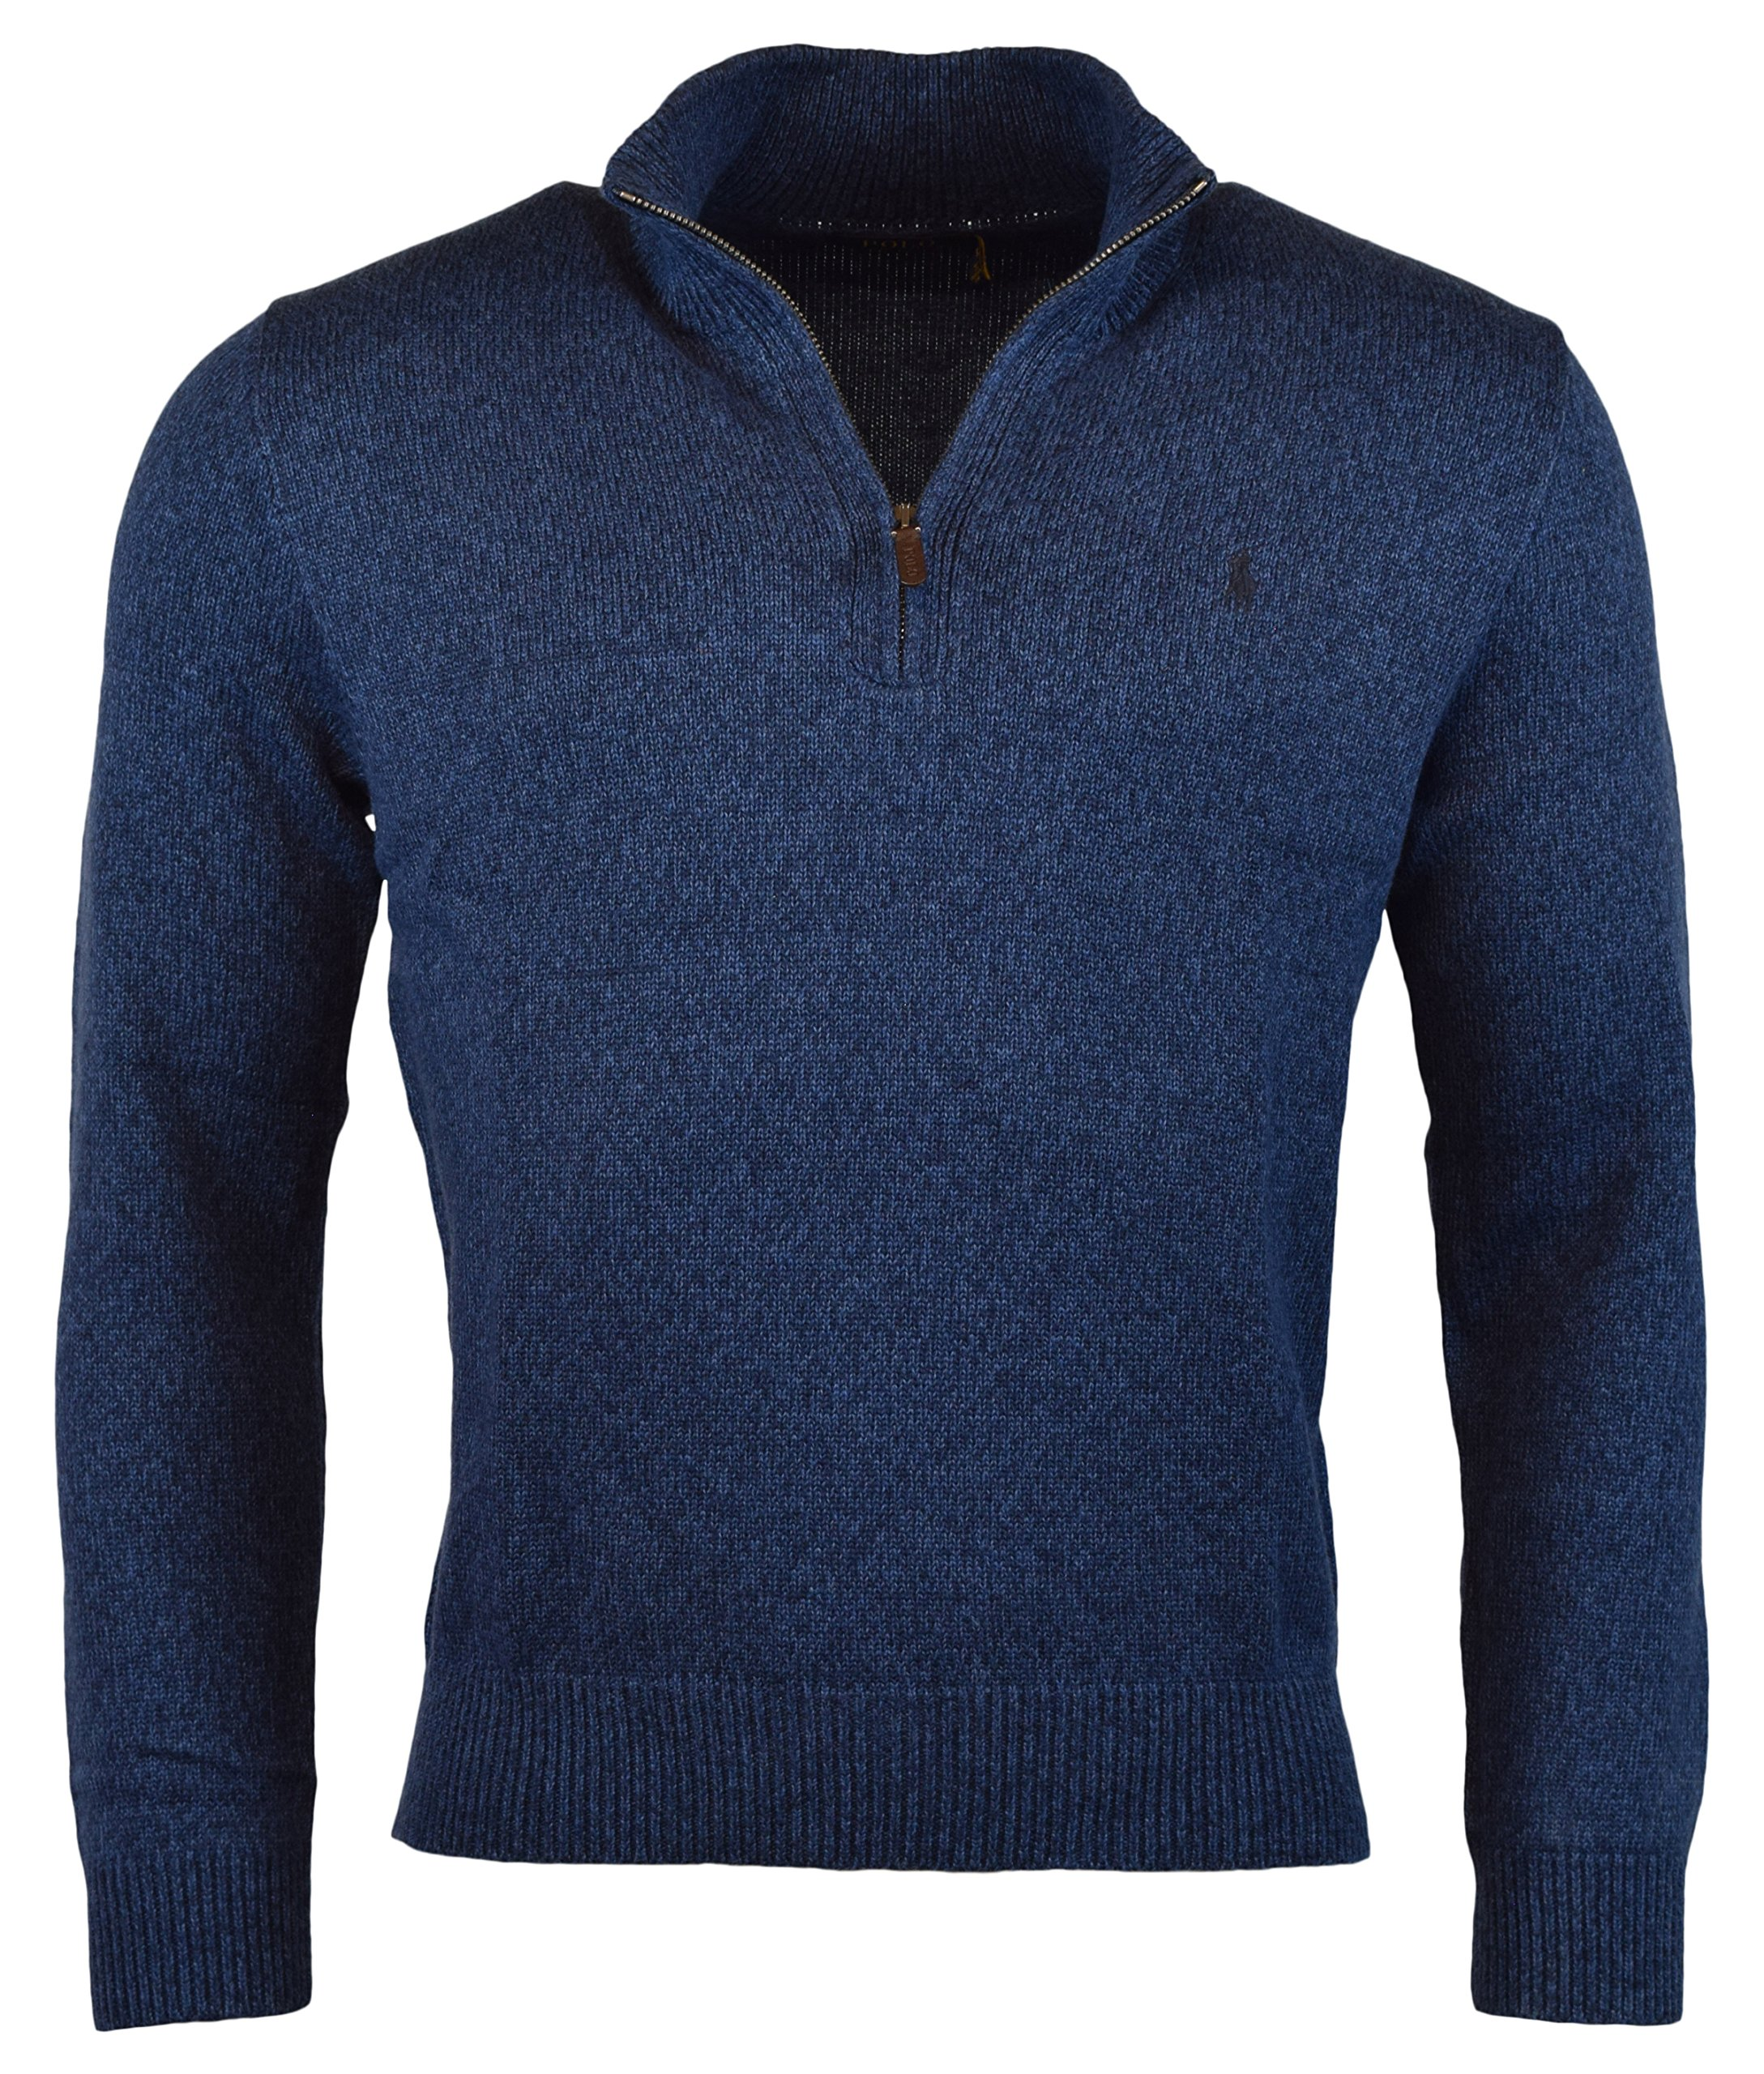 Polo Ralph Lauren Men's Half-Zip Mockneck Sweater, XL, Blue